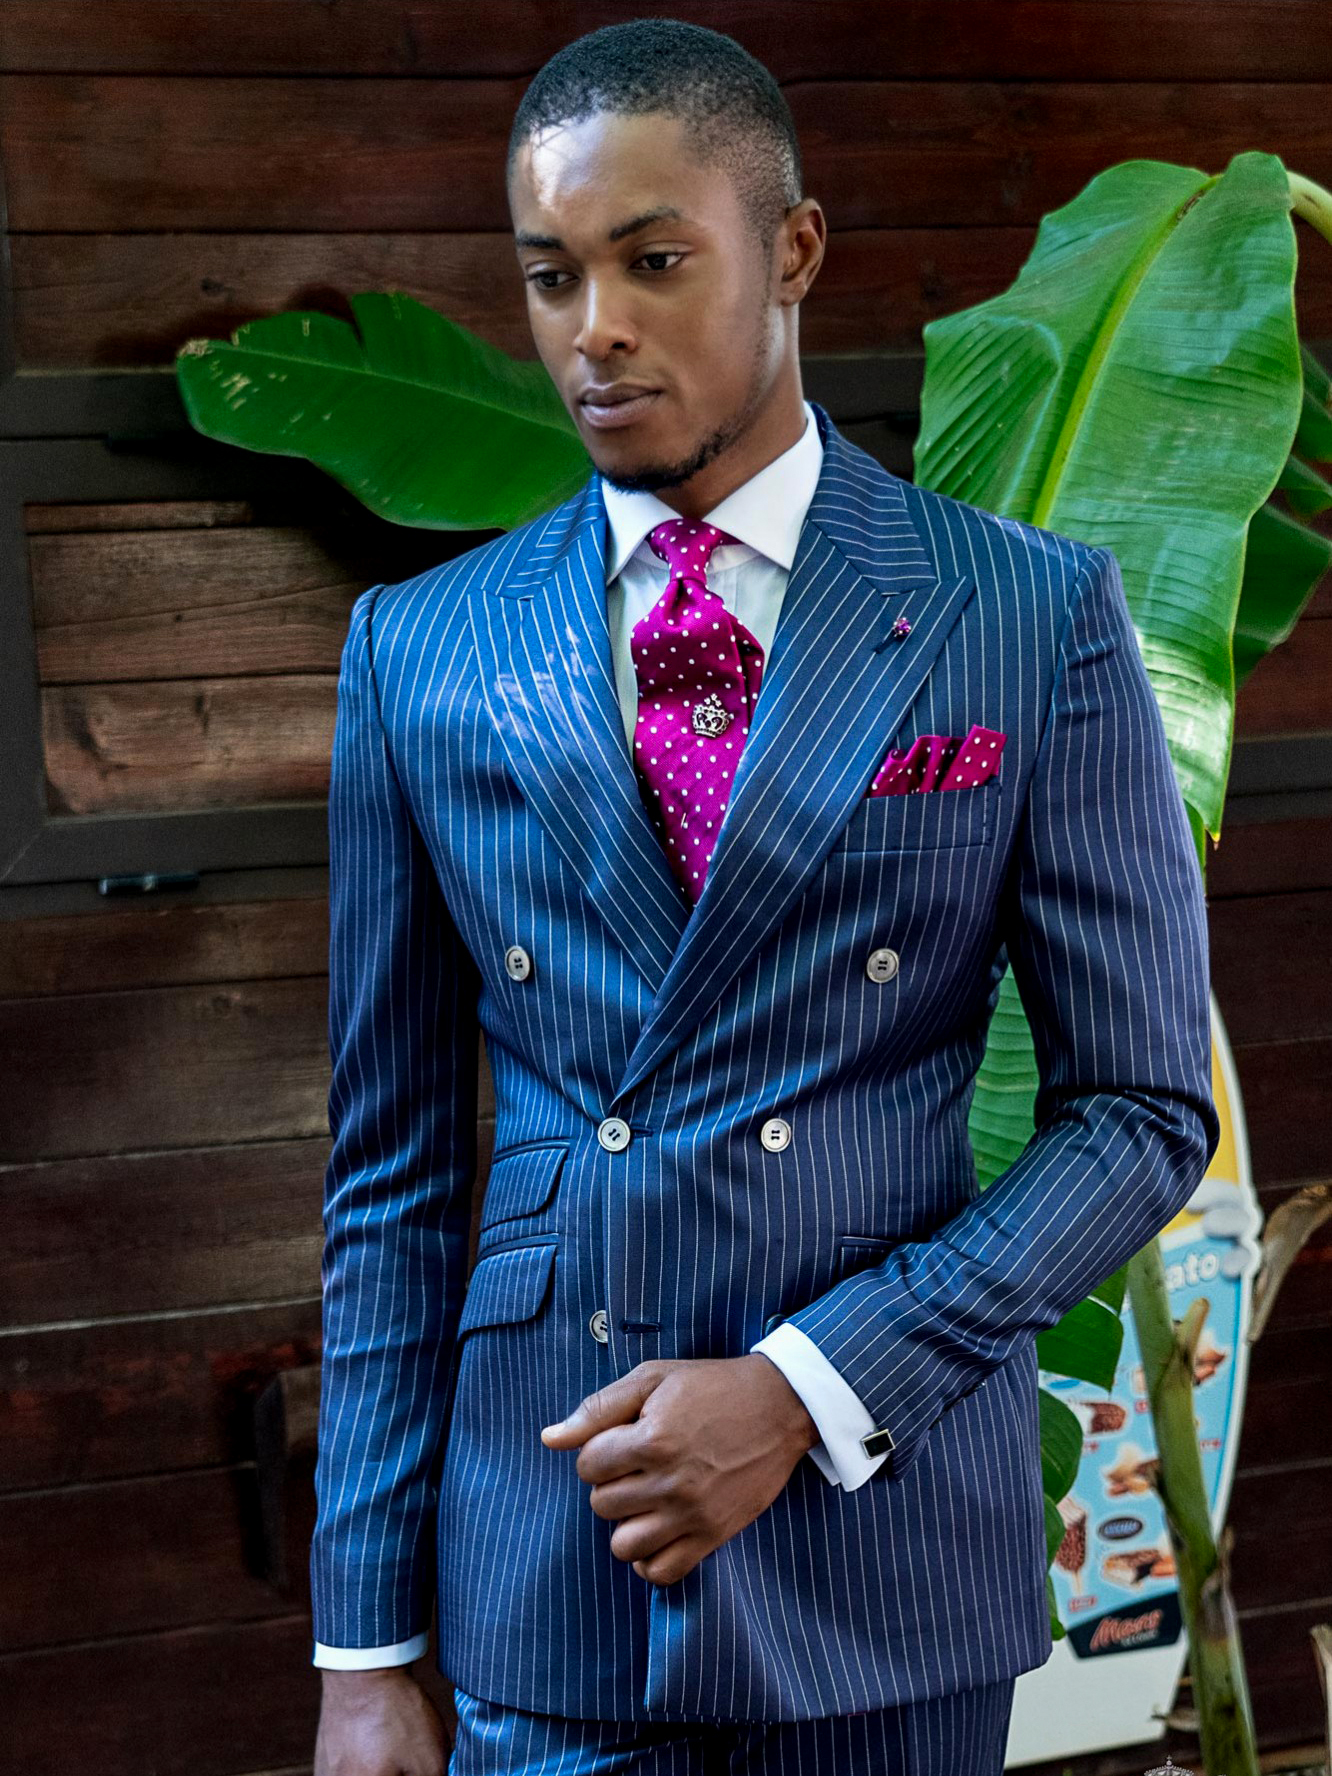 Pinstriped double breasted suit